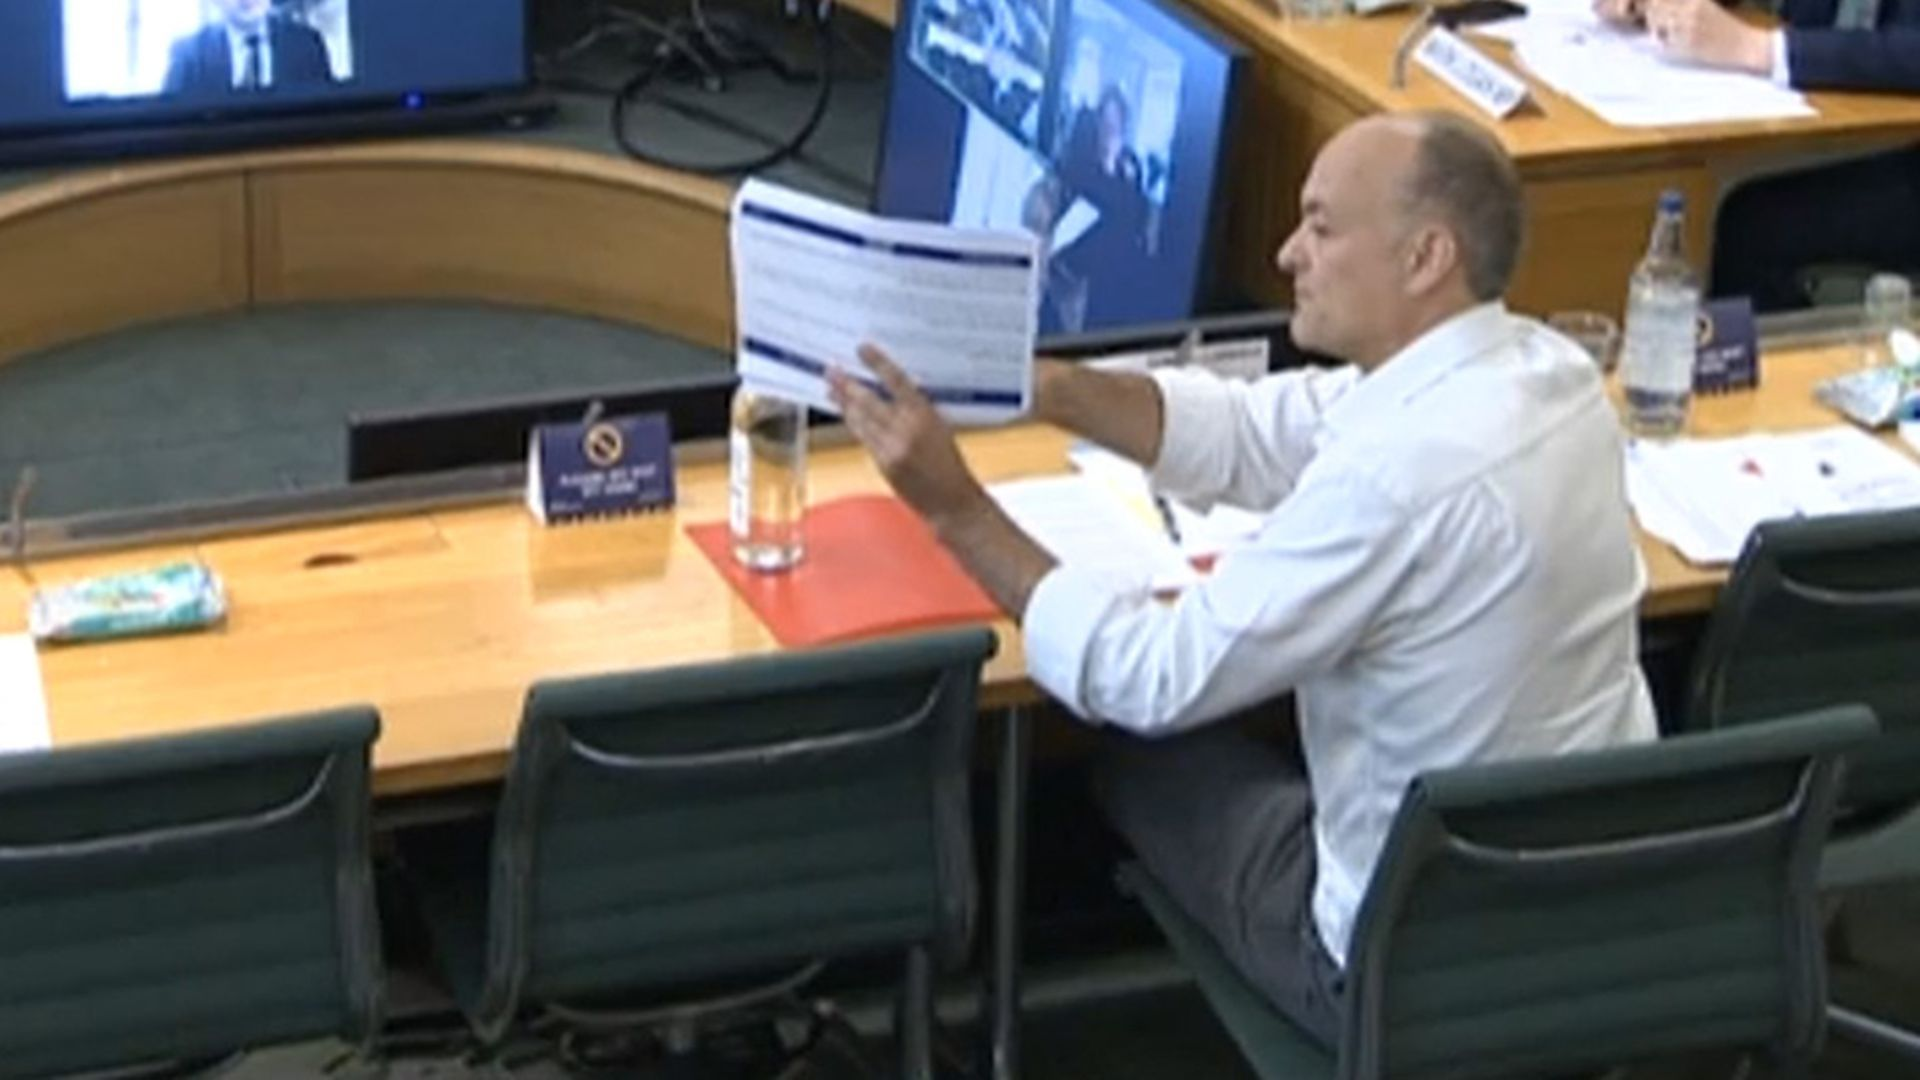 Dominic Cummings, former Chief Adviser to Prime Minister Boris Johnson, holds up a document whilst giving evidence to a joint inquiry of the Commons Health and Social Care and Science and Technology Committees - Credit: PA